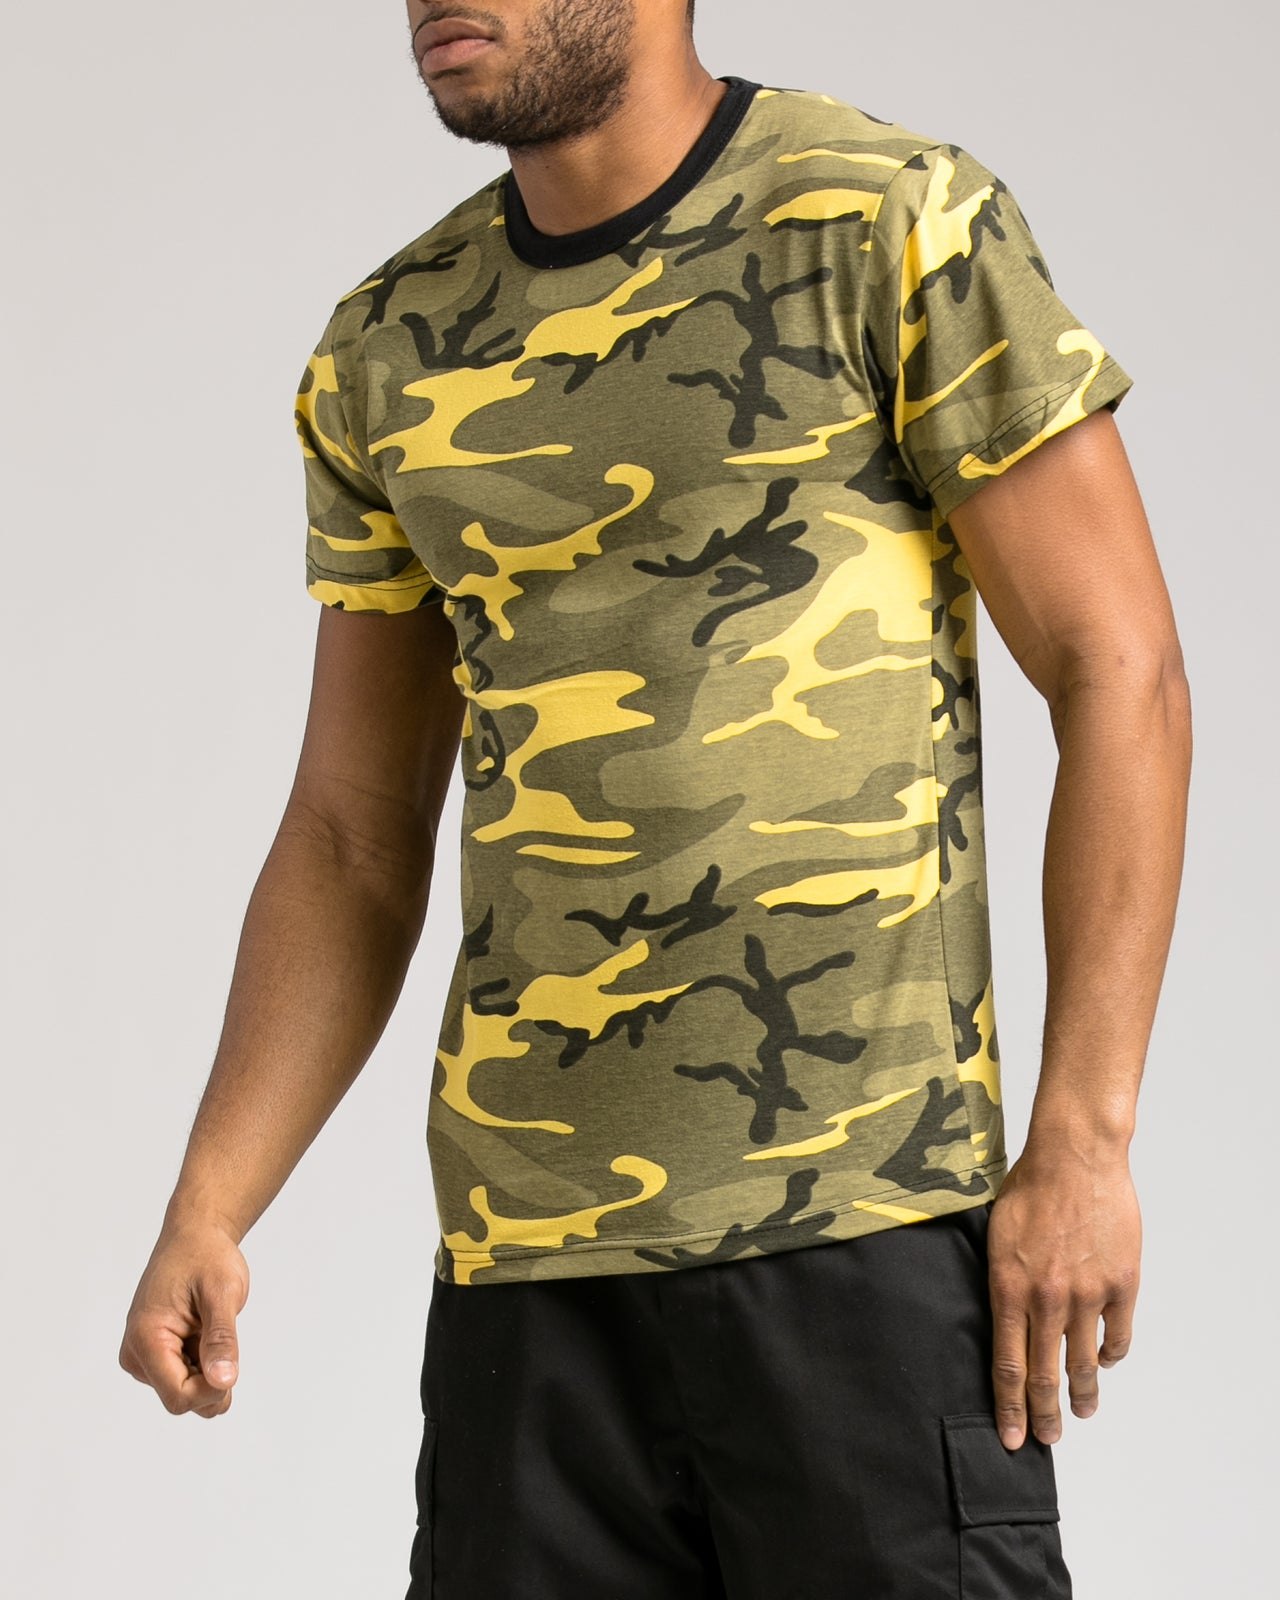 Camo Tee - Color: Yellow Camo | Yellow